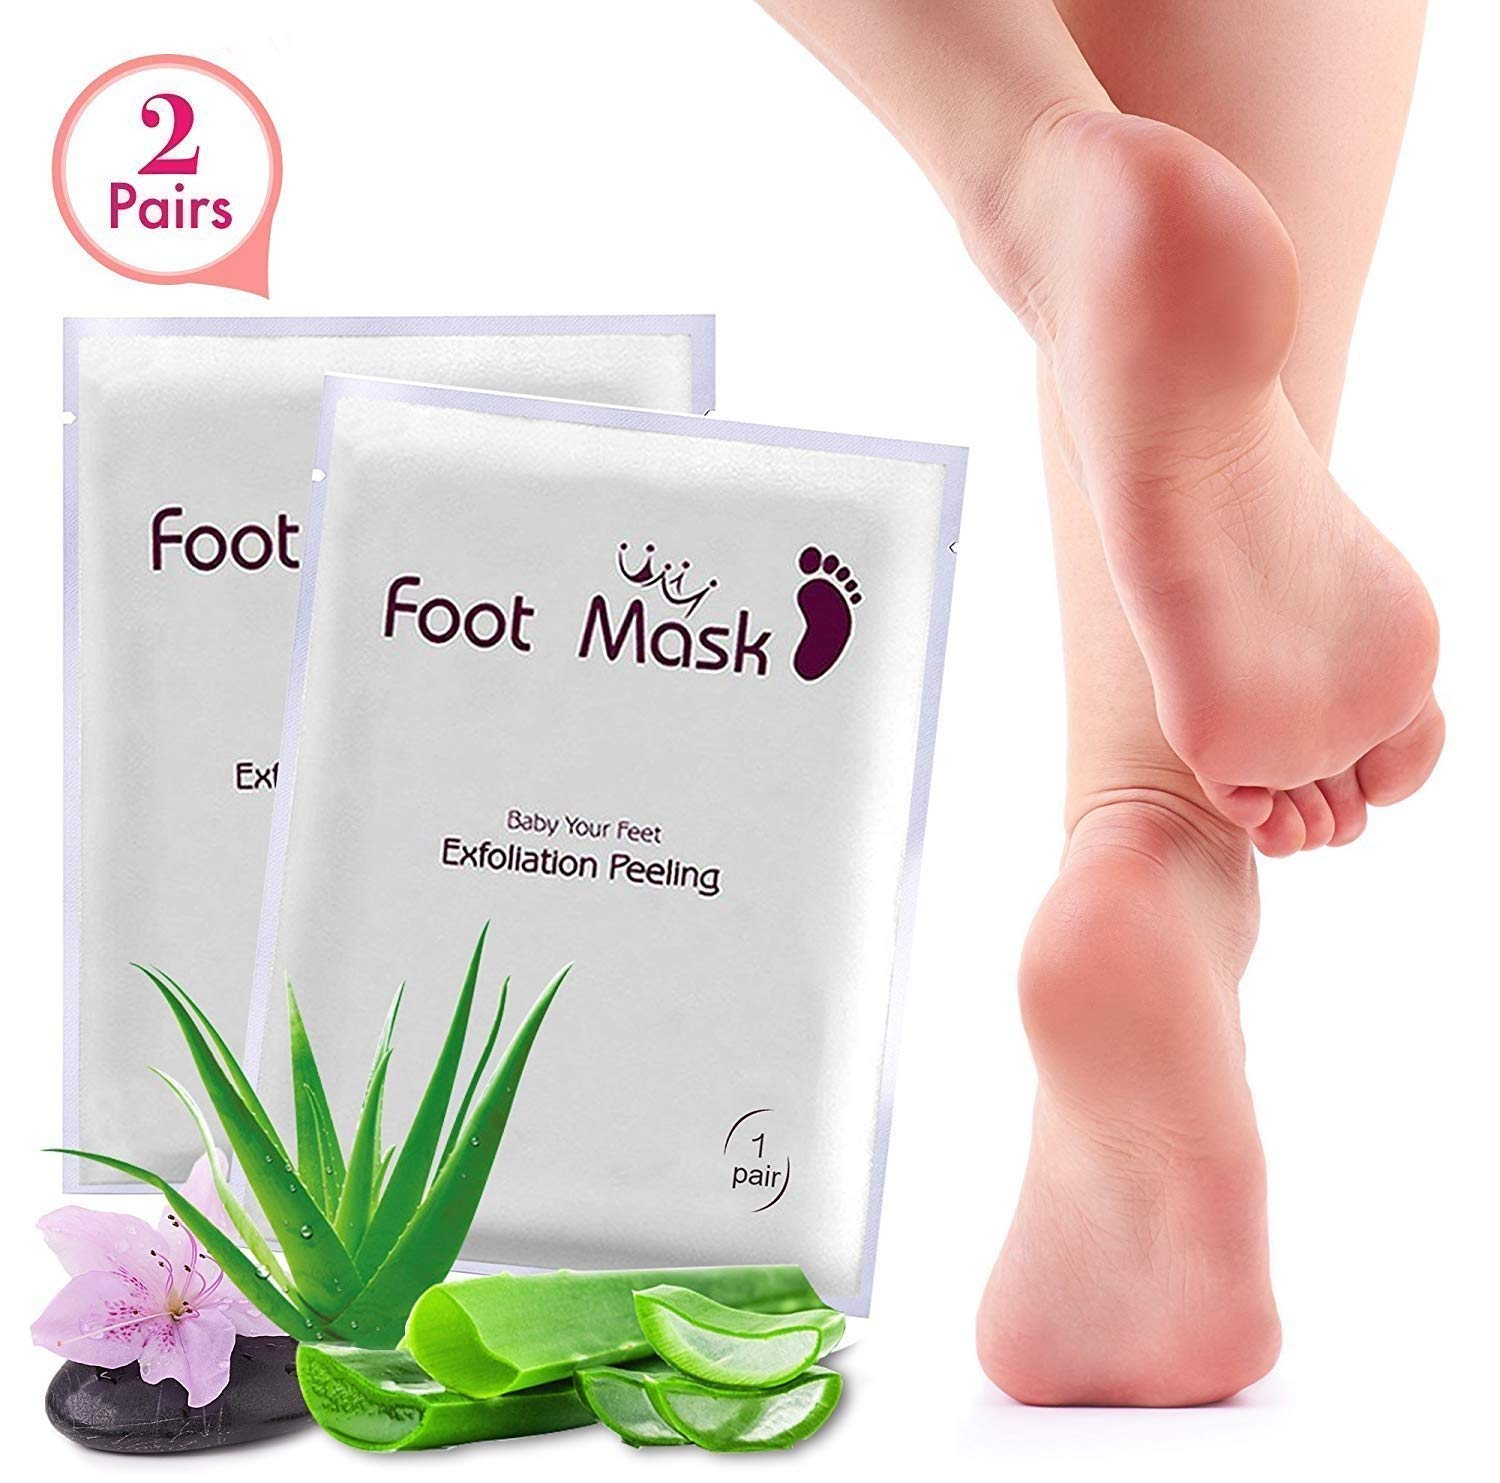 Exfoliating Foot Peel Mask For Softer, Smooth Feet- Gently Peel Away Calluses & Dead Skin, Repair Rough Heels, Get Beautiful Baby Feet in 7 Days (2 Pack) Tomiya IMP63T/NT63T